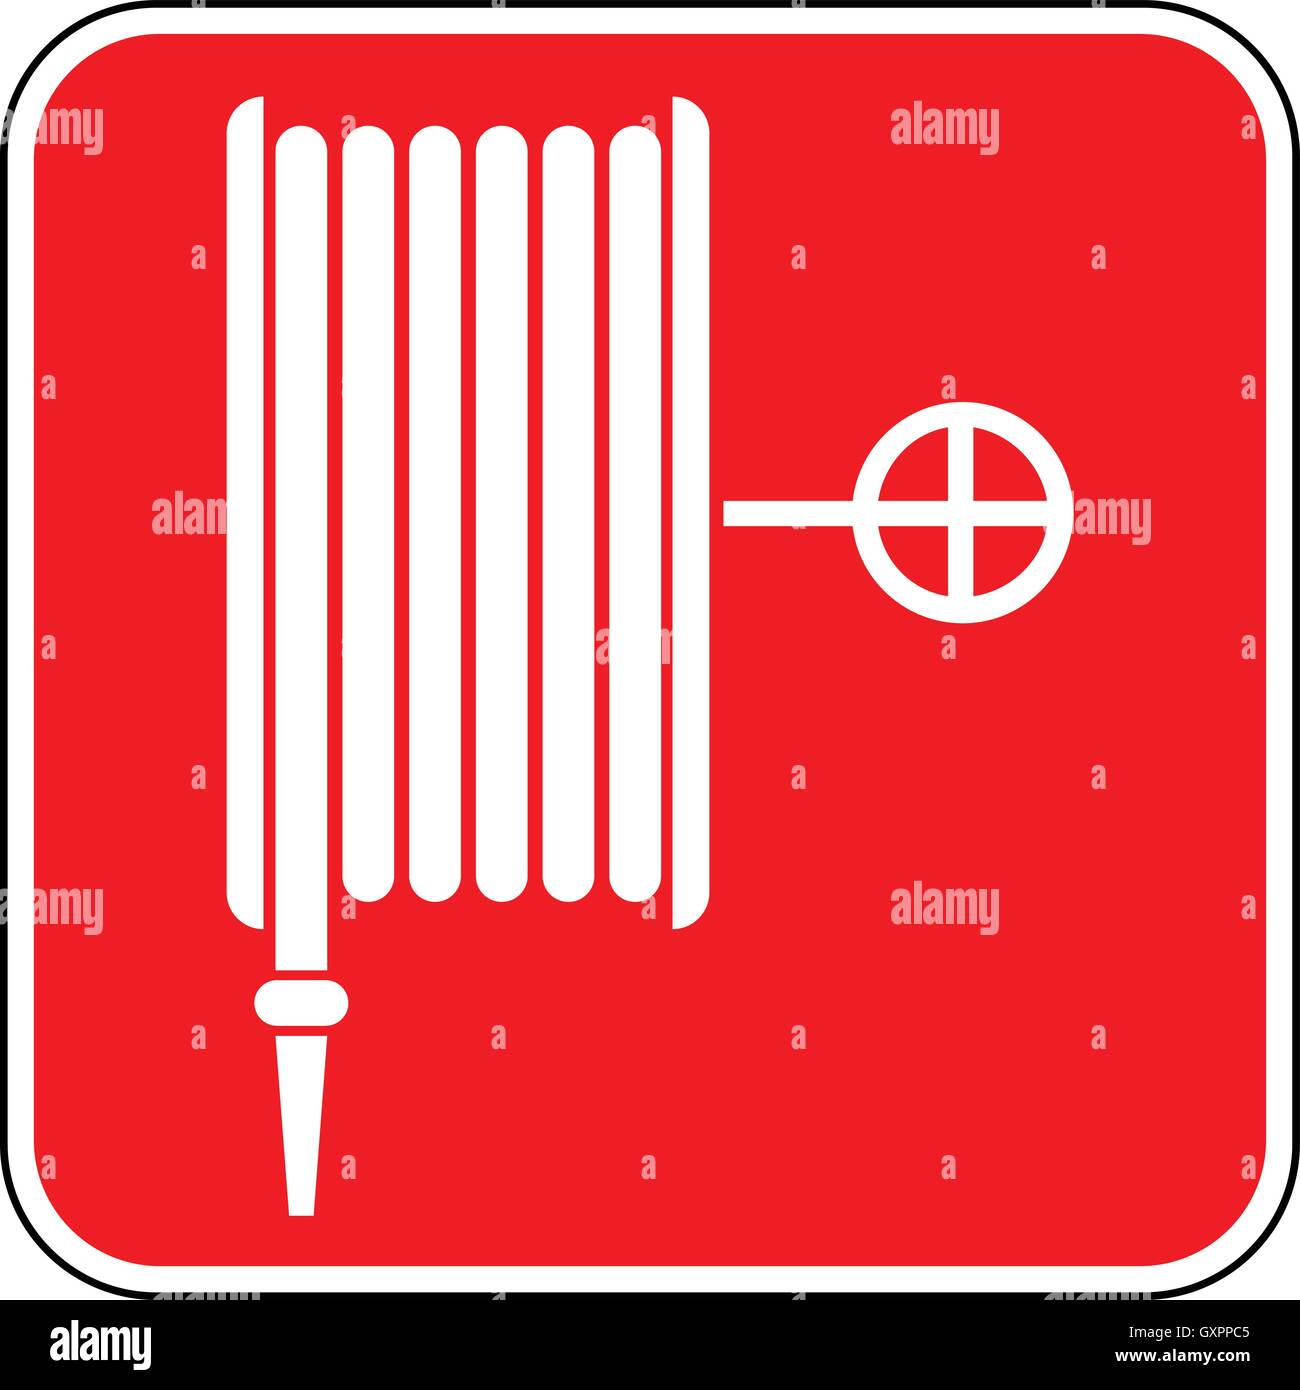 Emergency fire hose reel sign white fire hose icon on a red square background vector illustration.  sc 1 st  Alamy & Emergency fire hose reel sign white fire hose icon on a red square ...